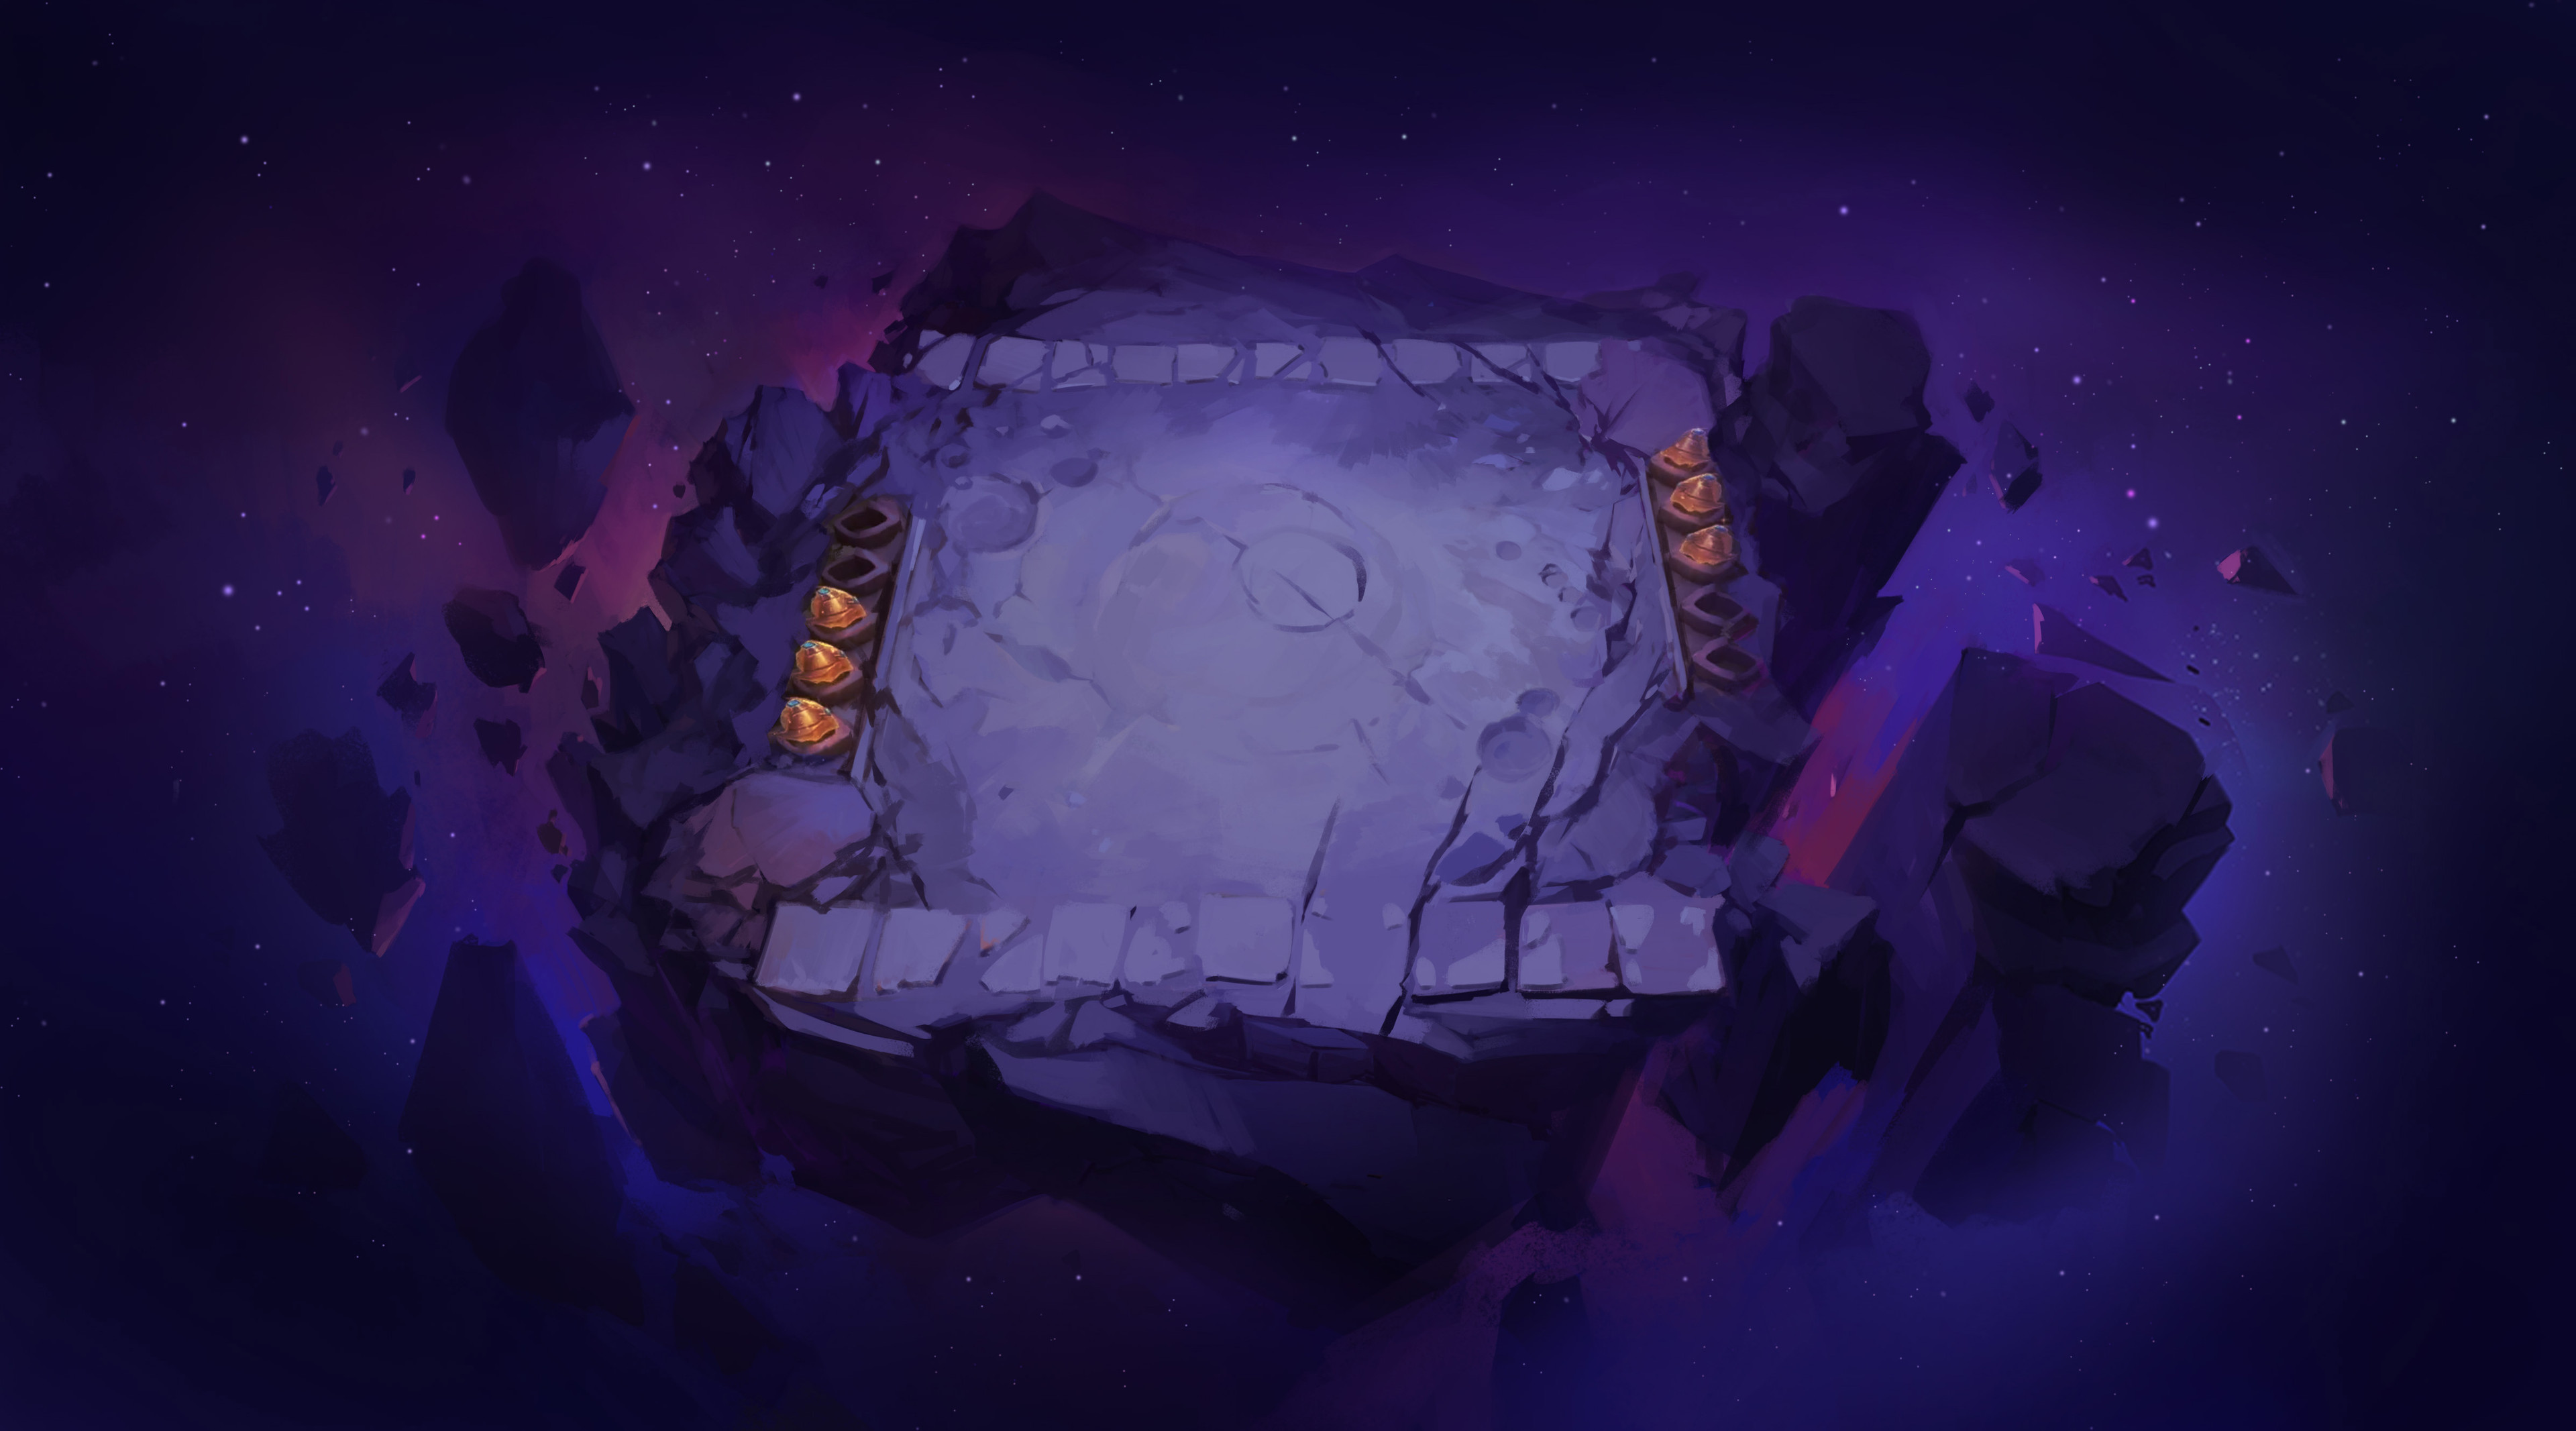 Concept for an entry-level arena in outer Space (Where No One Can Hear You Scream)